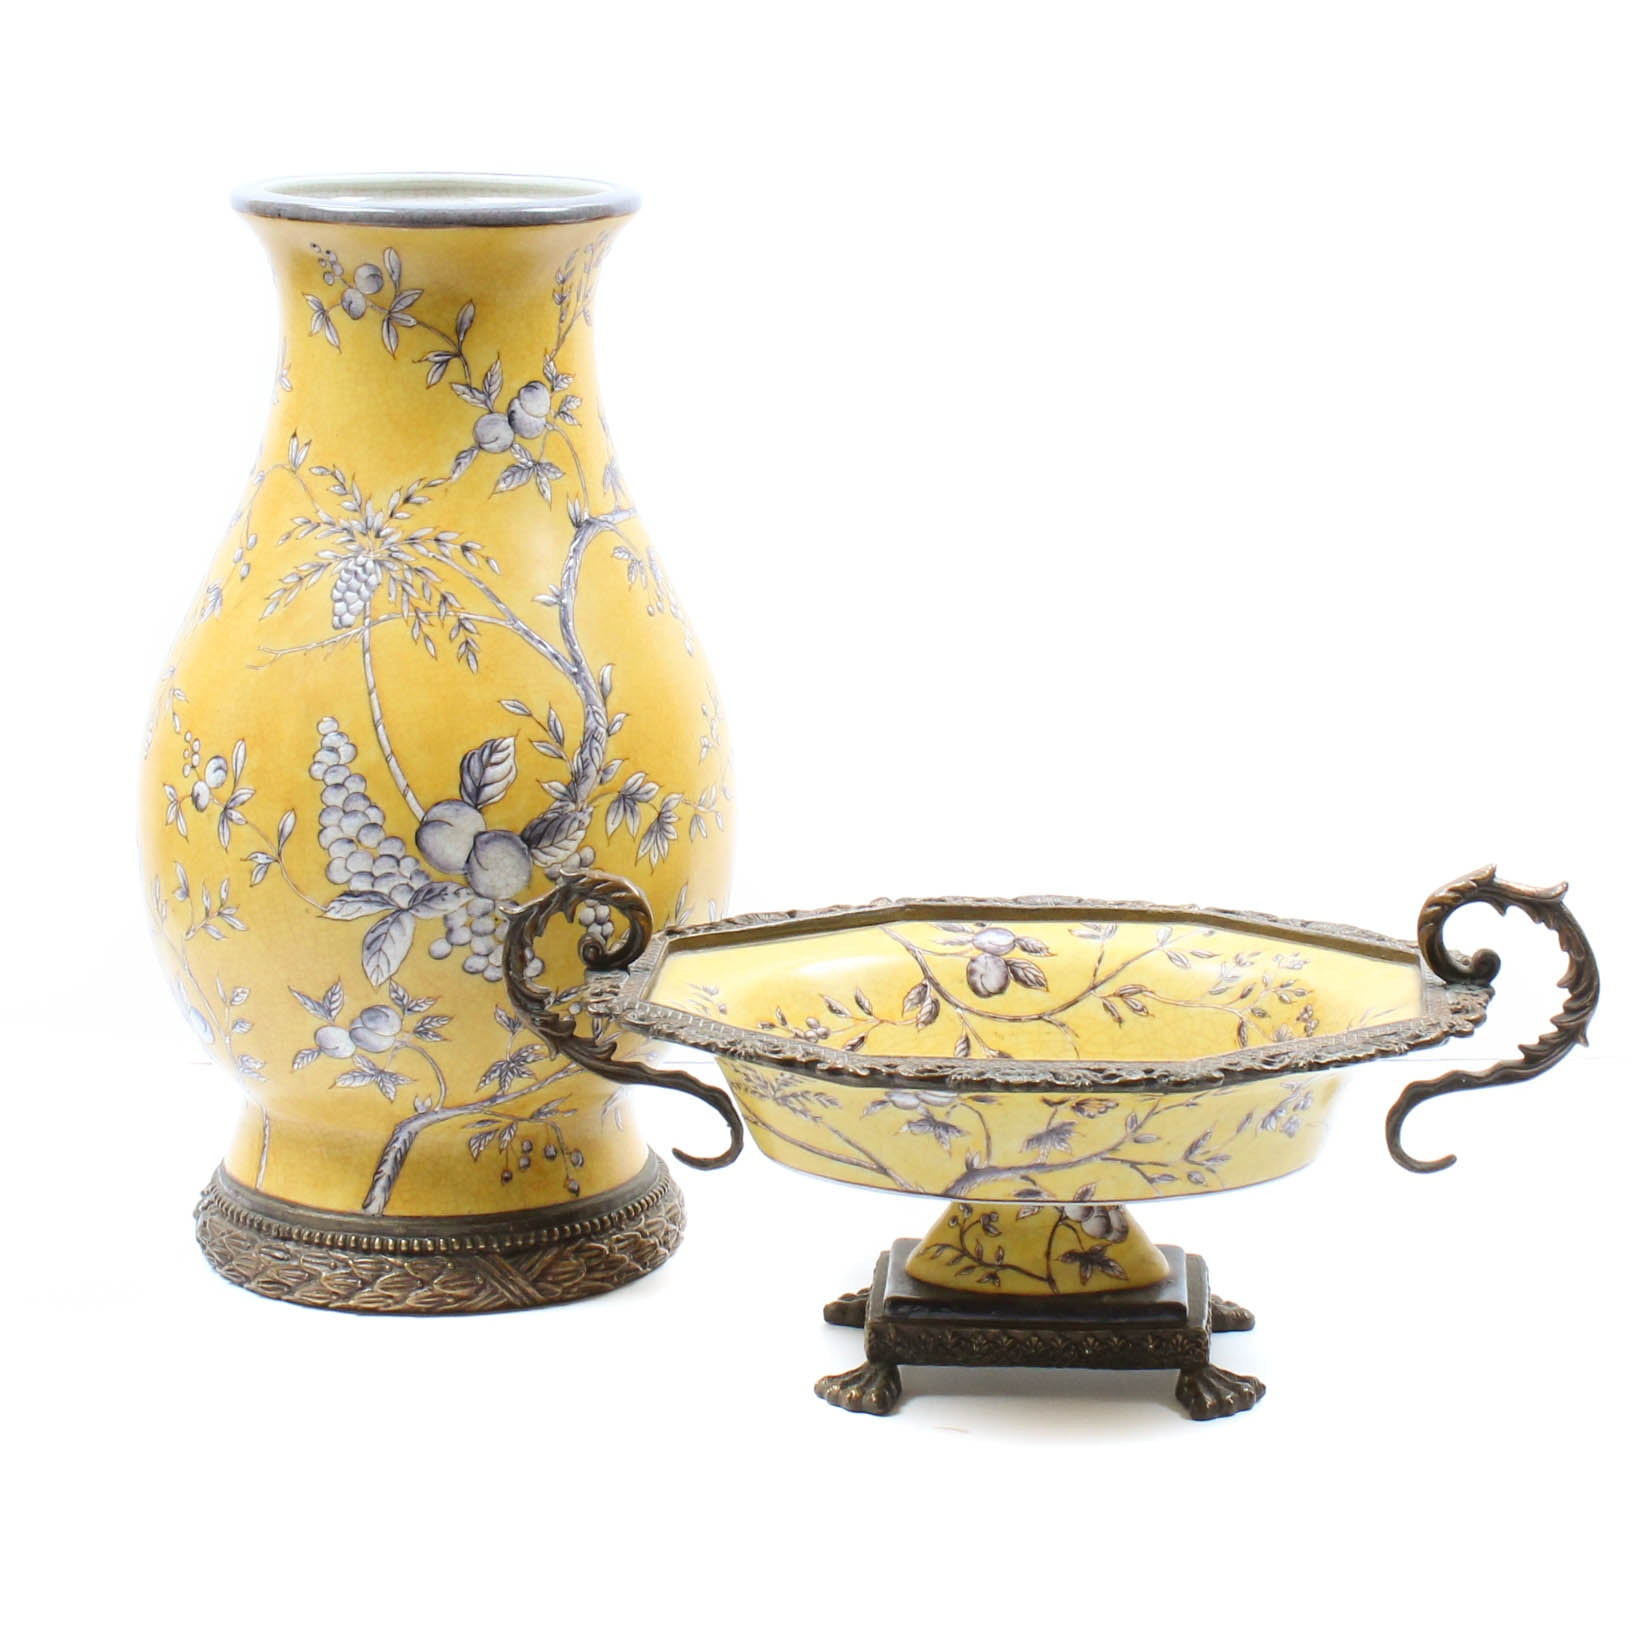 Chinese Ceramic Decor